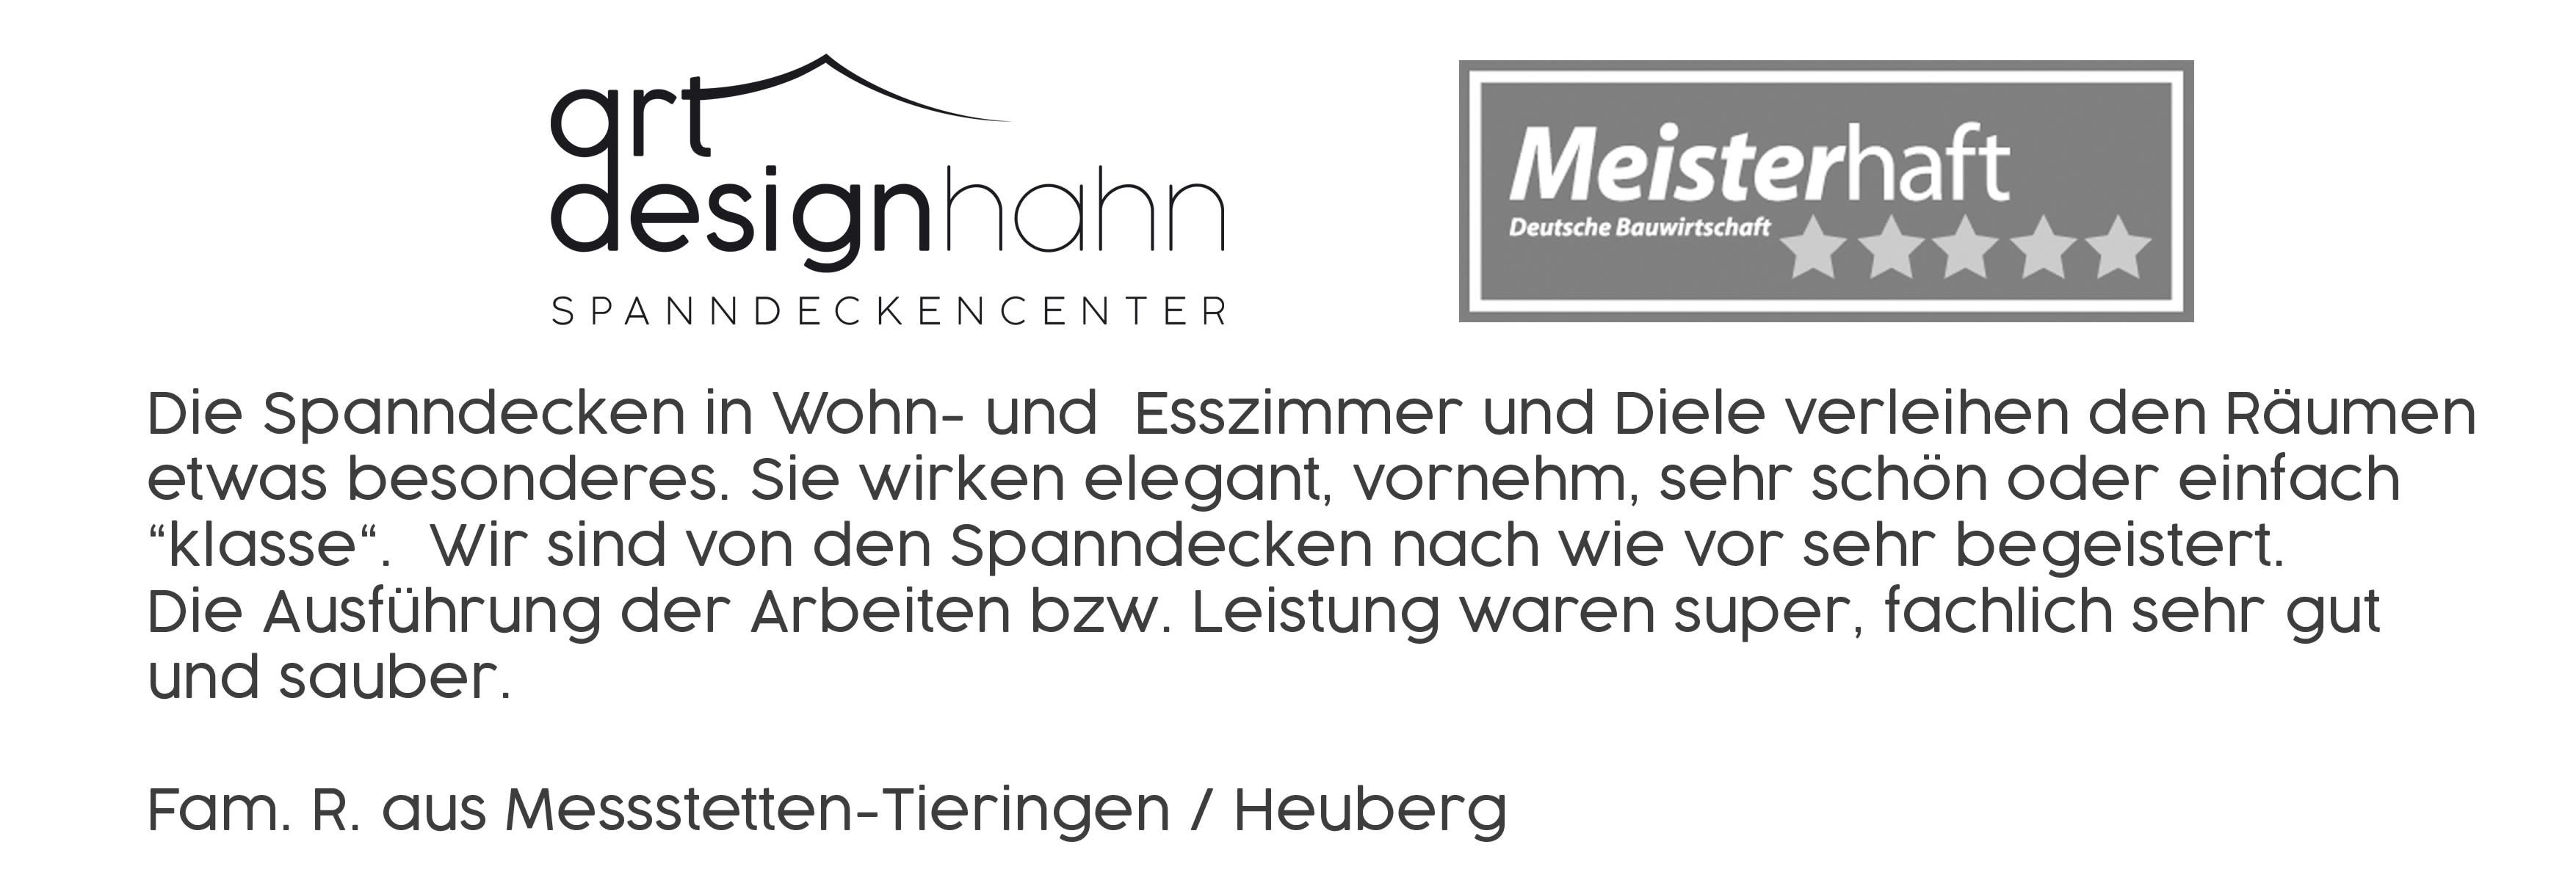 Art Design Hahn Meisterhafte Rezension 26